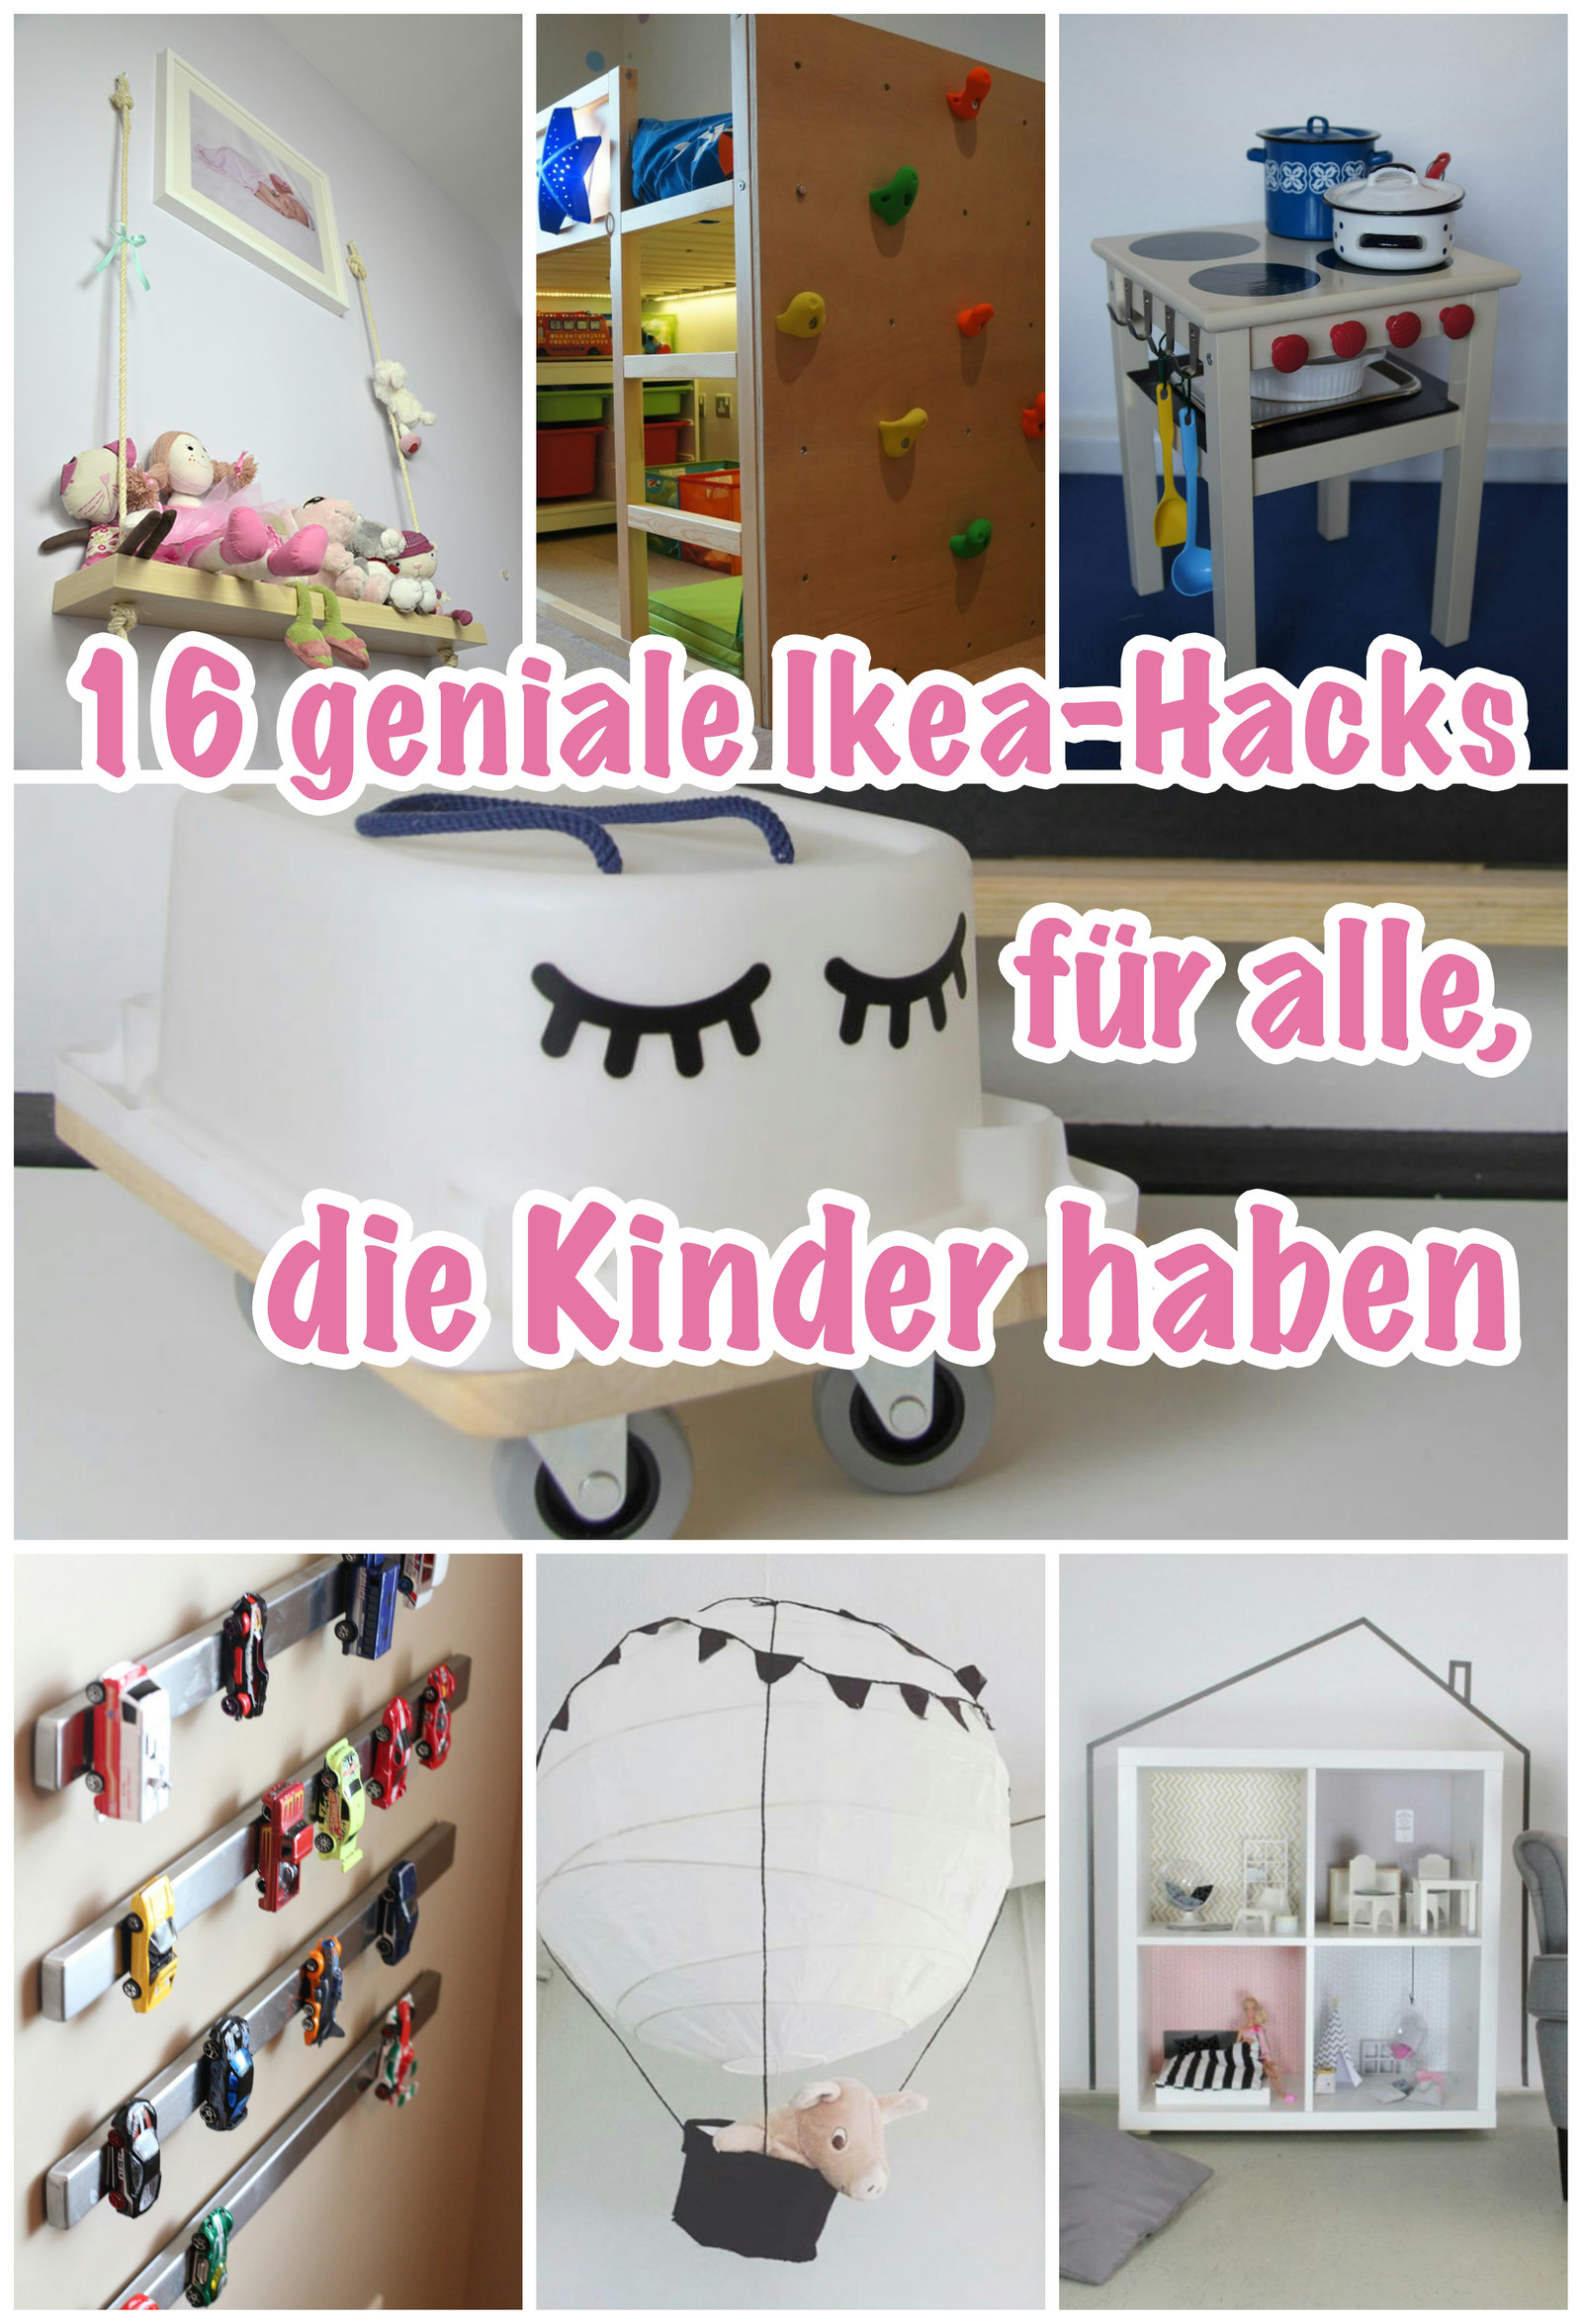 16 geniale ikea hacks die jedes kinderzimmer sch ner und gem tlicher machen. Black Bedroom Furniture Sets. Home Design Ideas